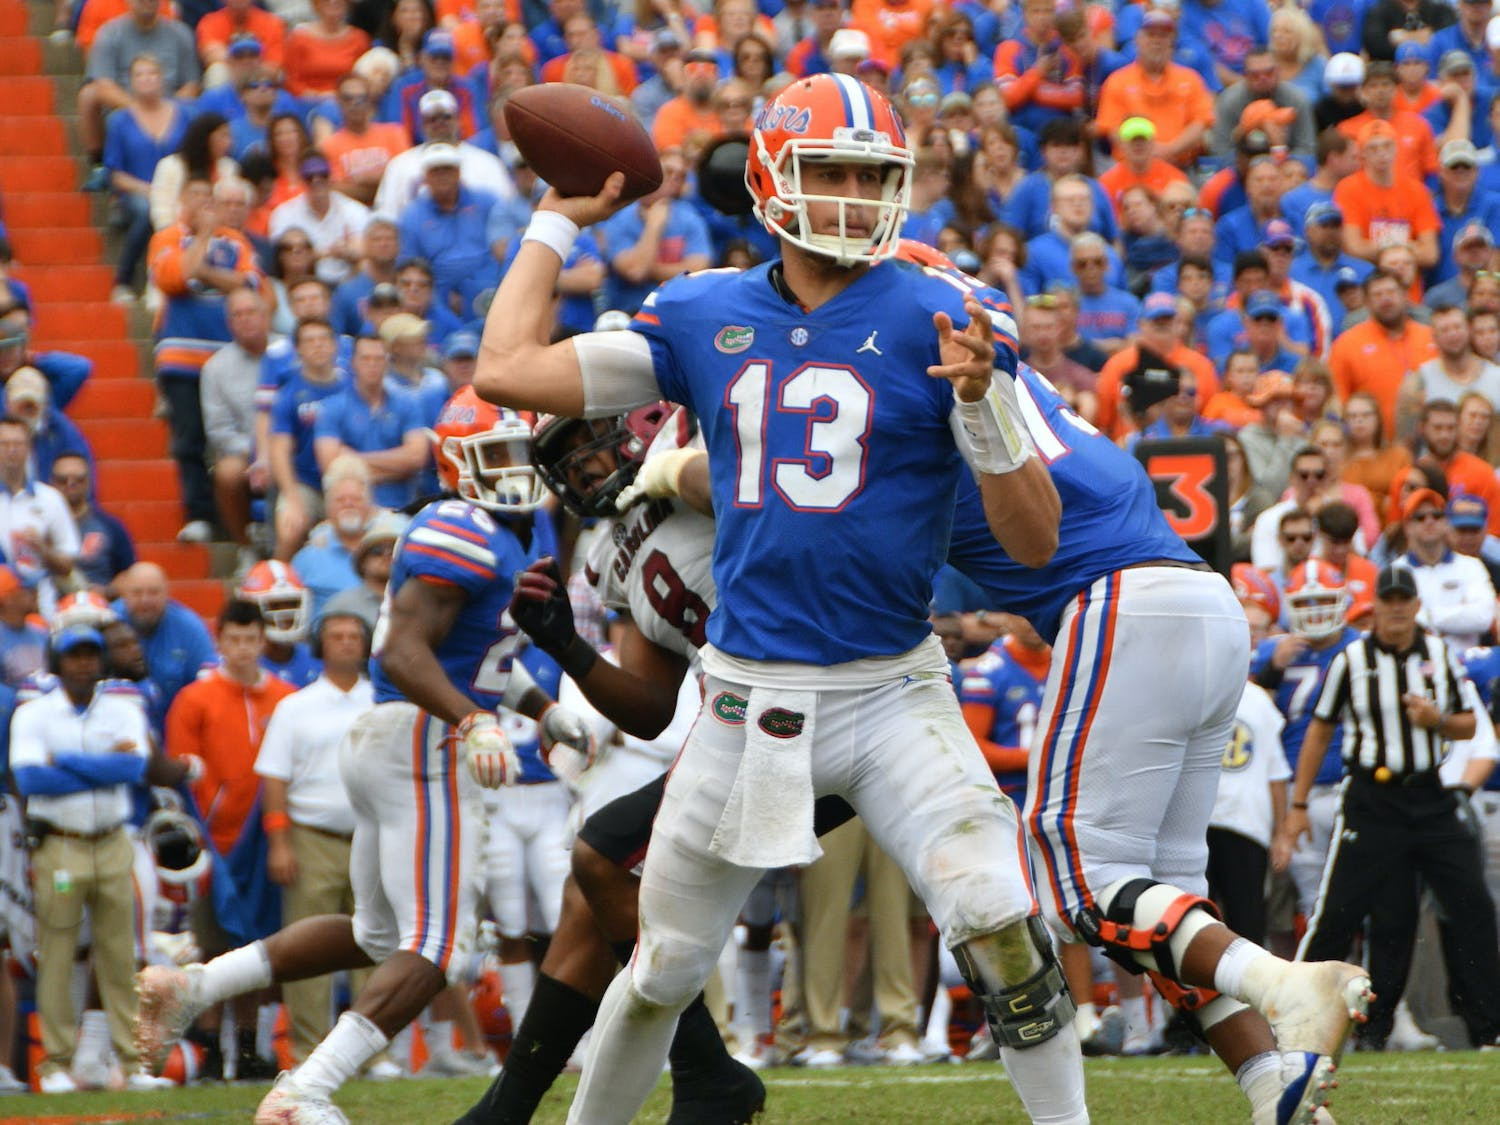 """UF quarterback Feleipe Franks seemed to run with purpose and physicality on Saturday against South Carolina. """"I just wanted to run somebody over,"""" he said."""